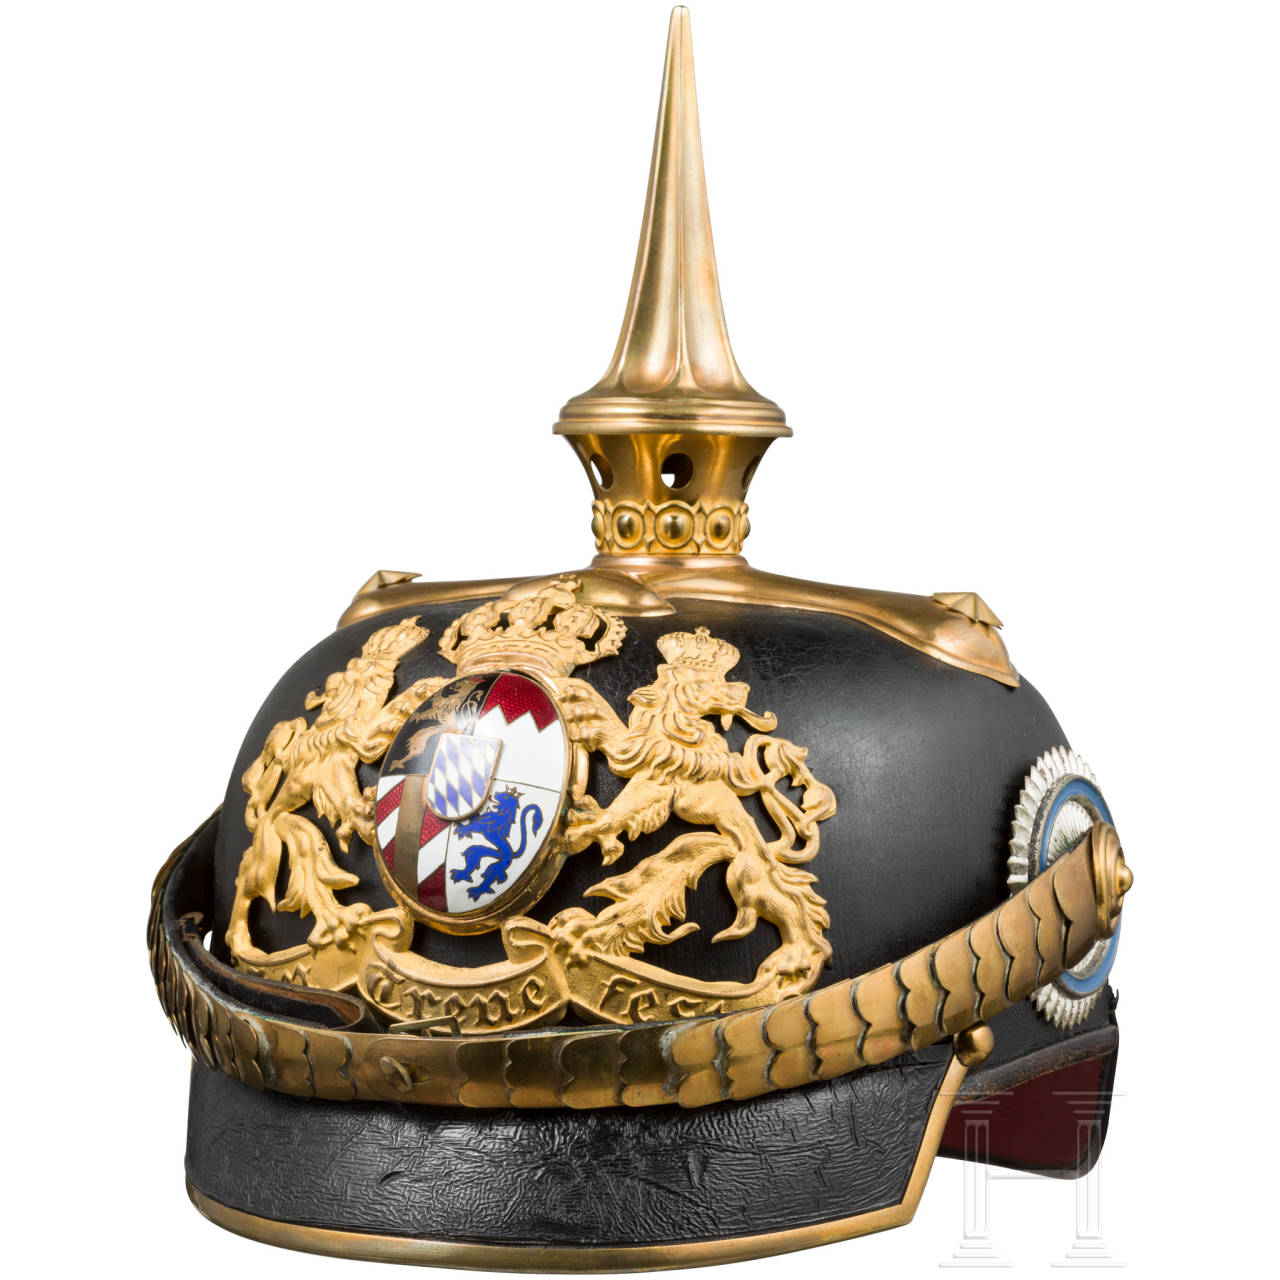 Helmet M 1886/1914 for medical officers in a general's rank